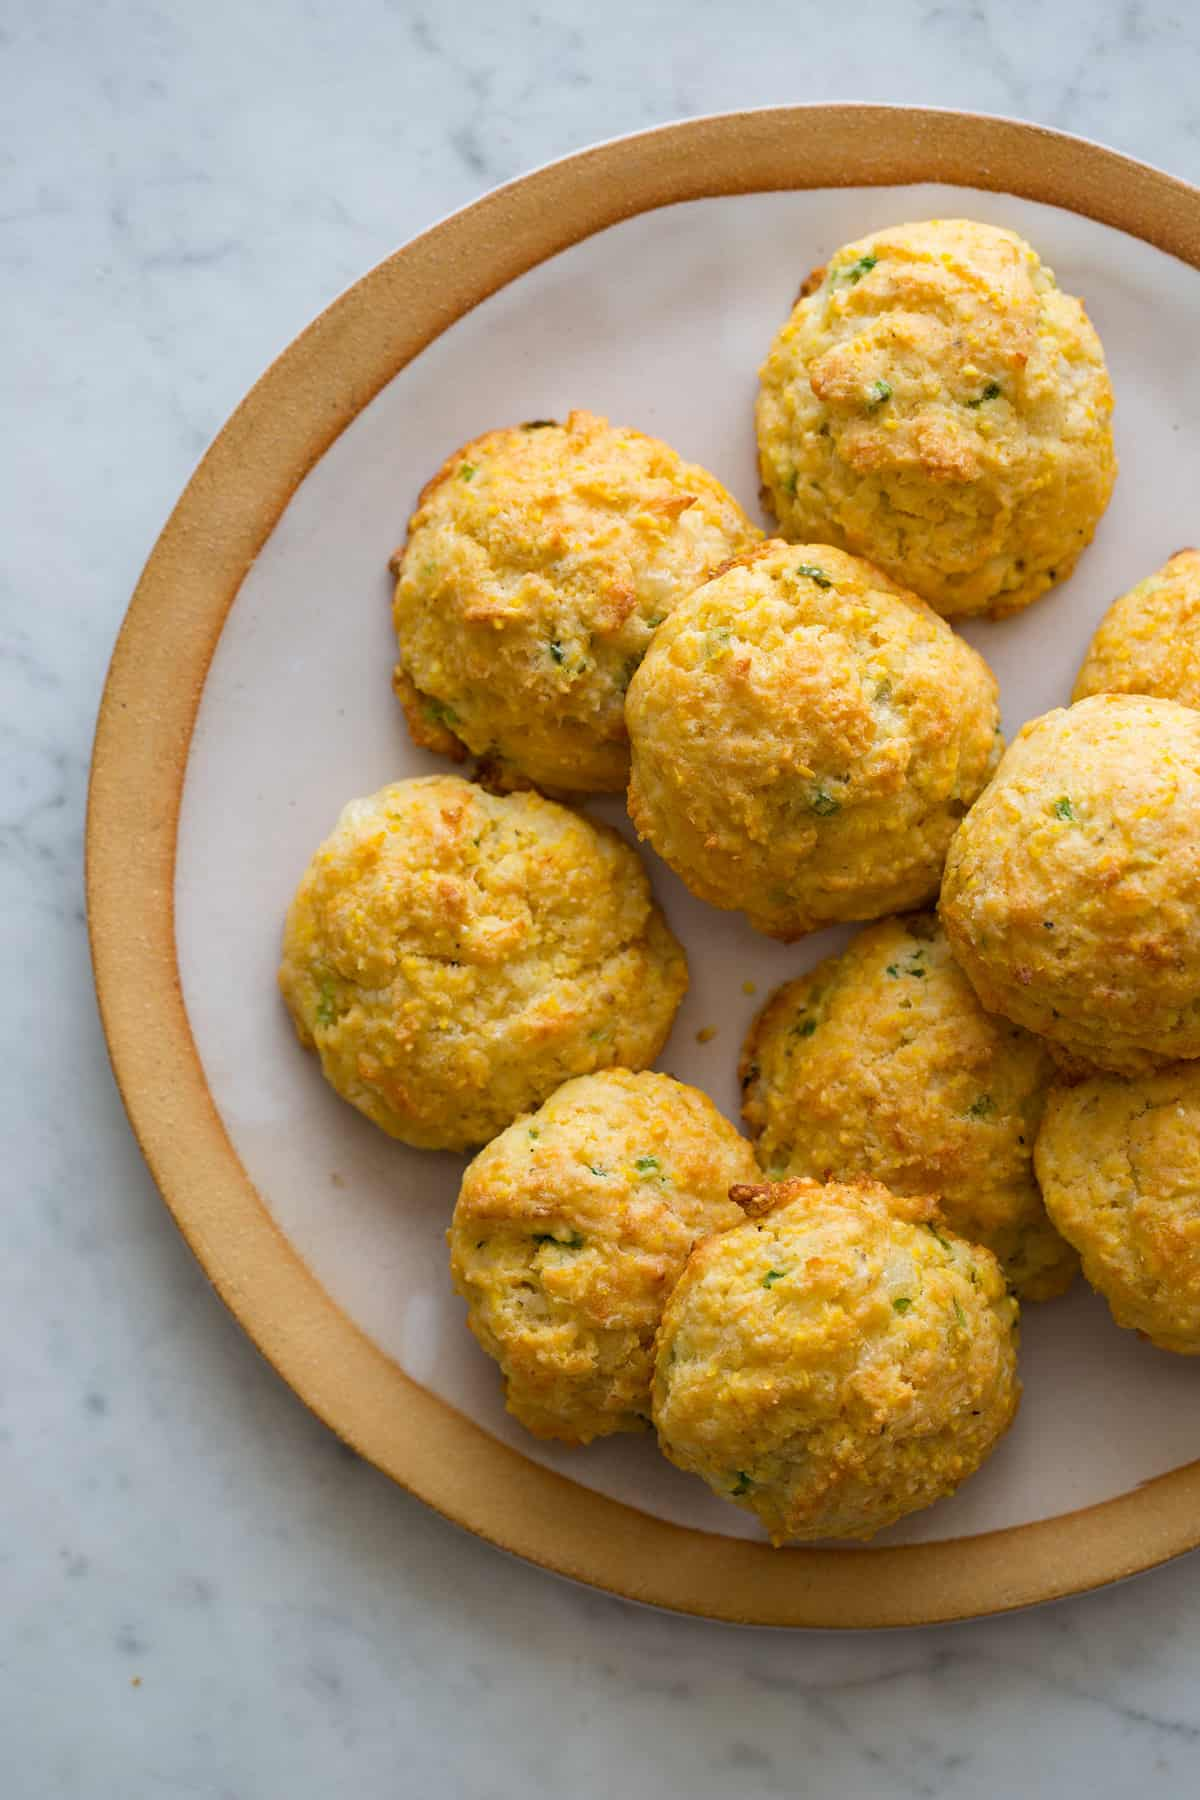 ... biscuits cornmeal biscuits blue cornmeal biscuits recipe dishmaps blue